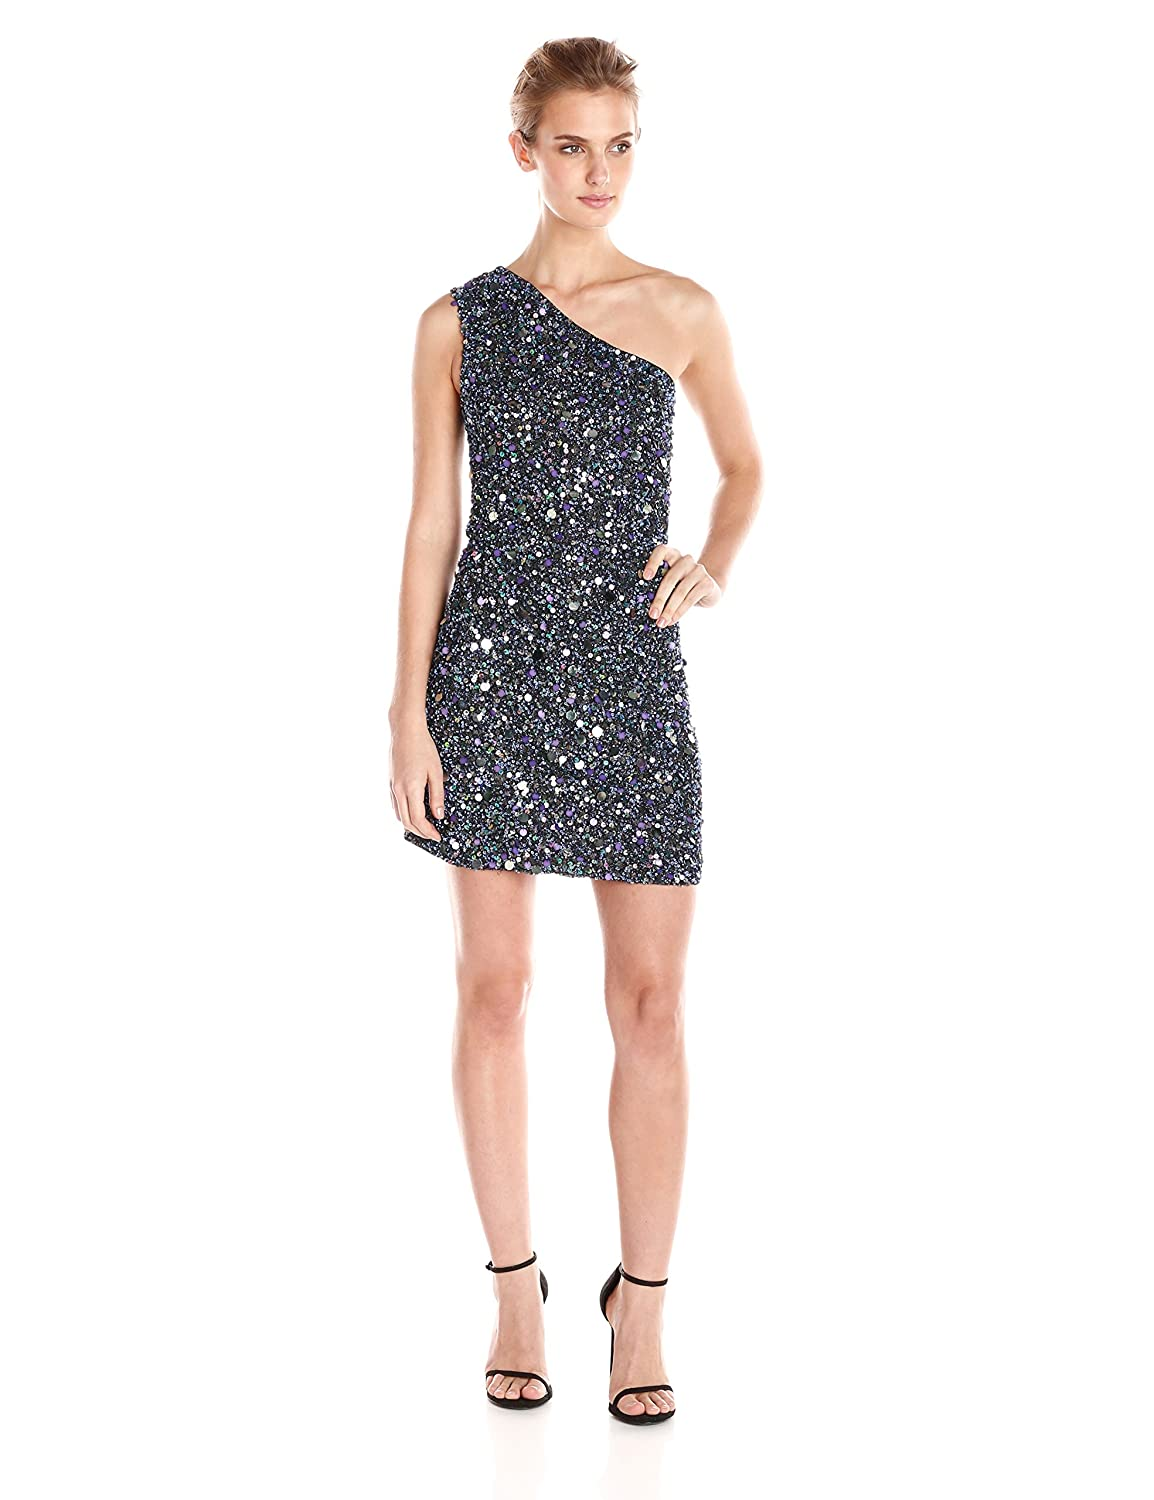 Cynthia Rowley Womens All Over Sequin One Shoulder Dress